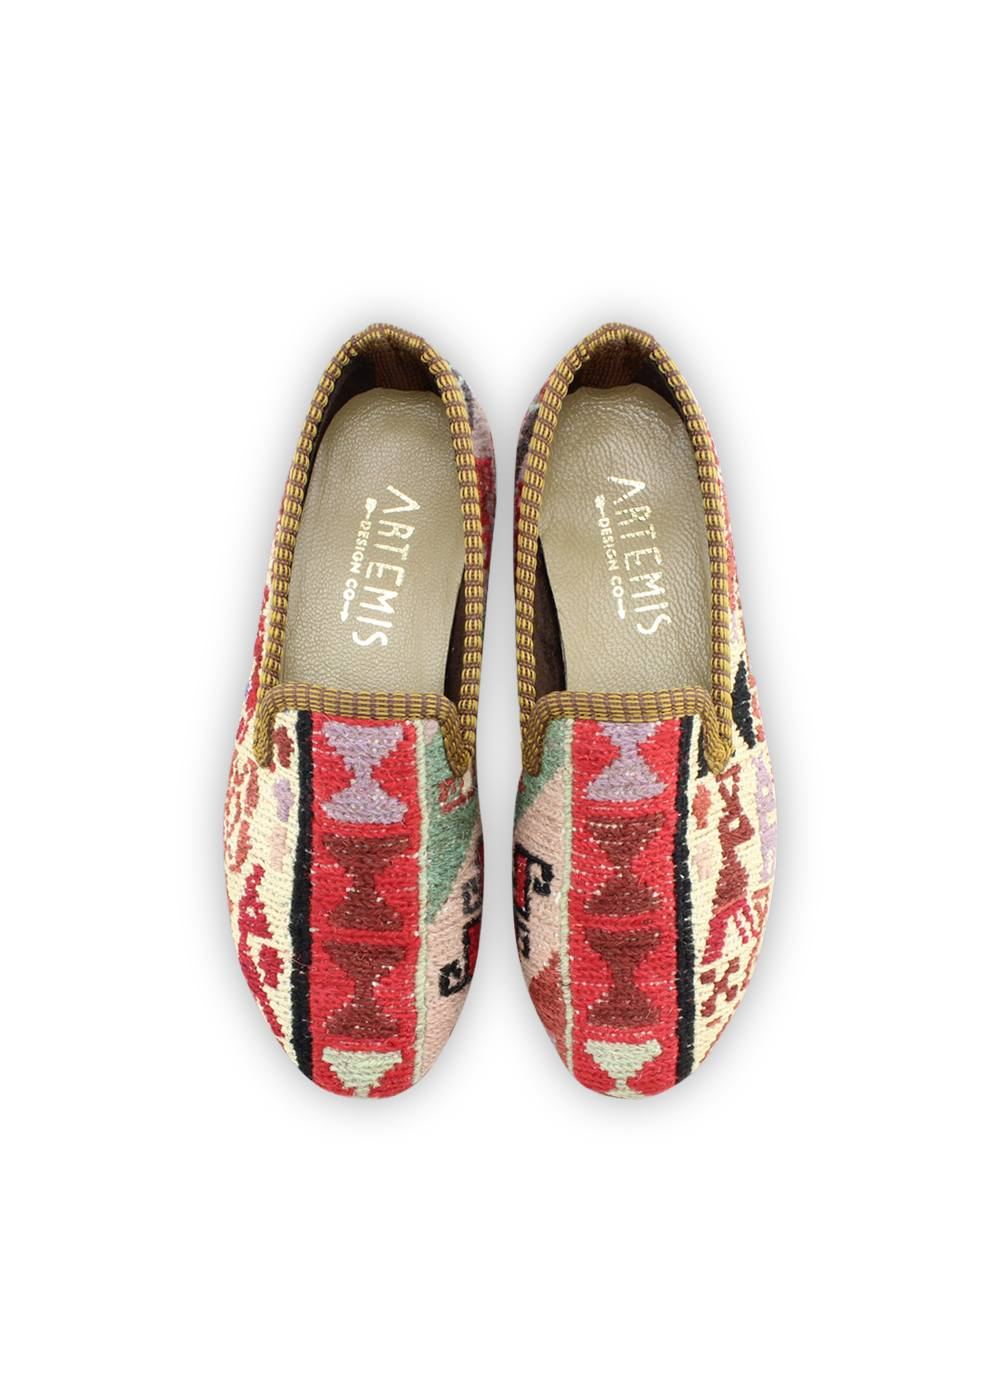 Children's Shoes - Children's Sumak Kilim Loafers - Size 32